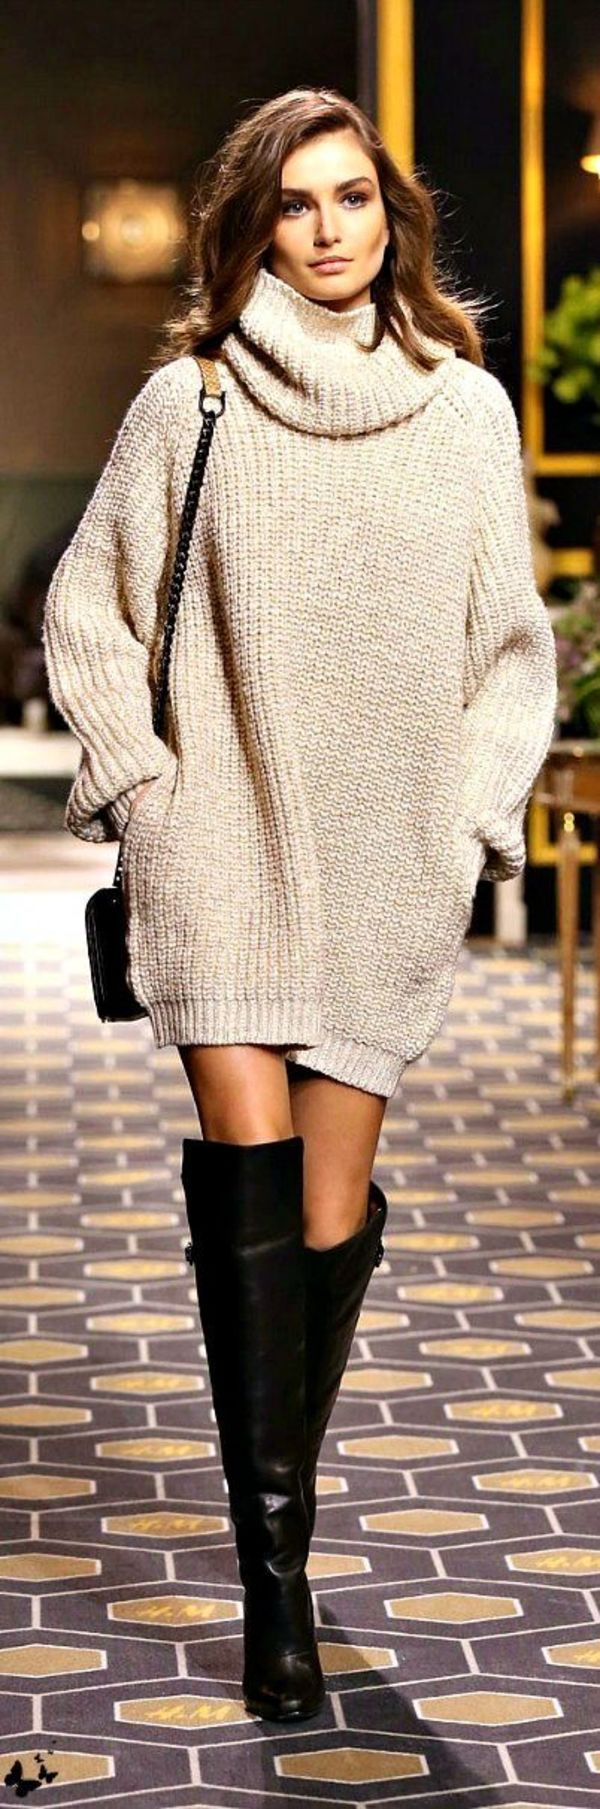 18 best Sweater Dresses images on Pinterest | Outfits, Sweater ...